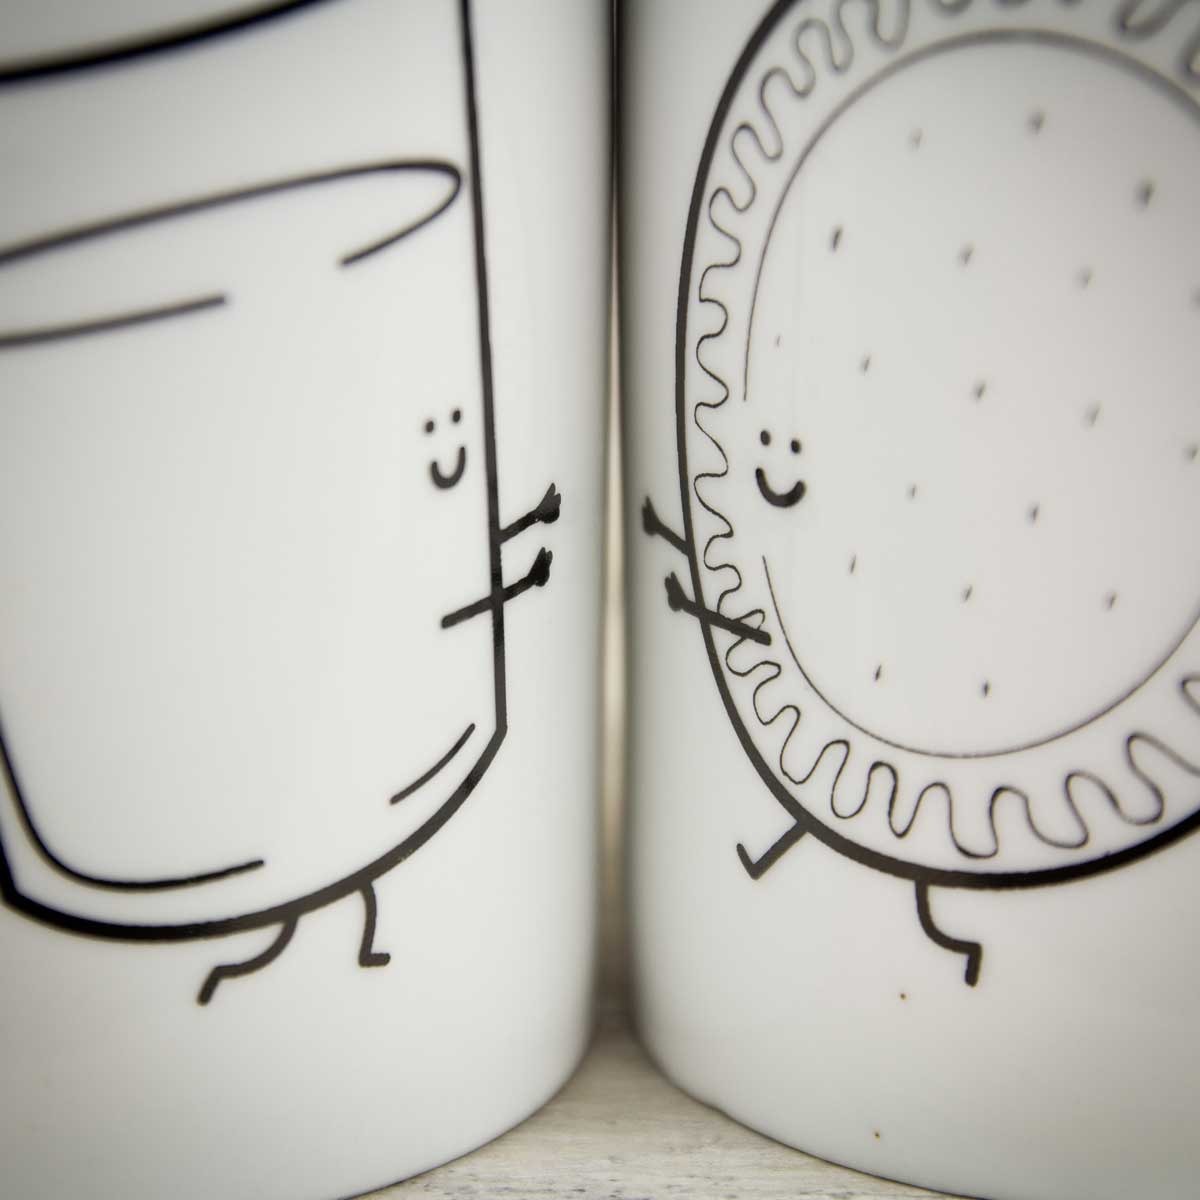 MRWONDERFUL_SEMANA-24012013_TAZA-BETTER-TOGETHER_04